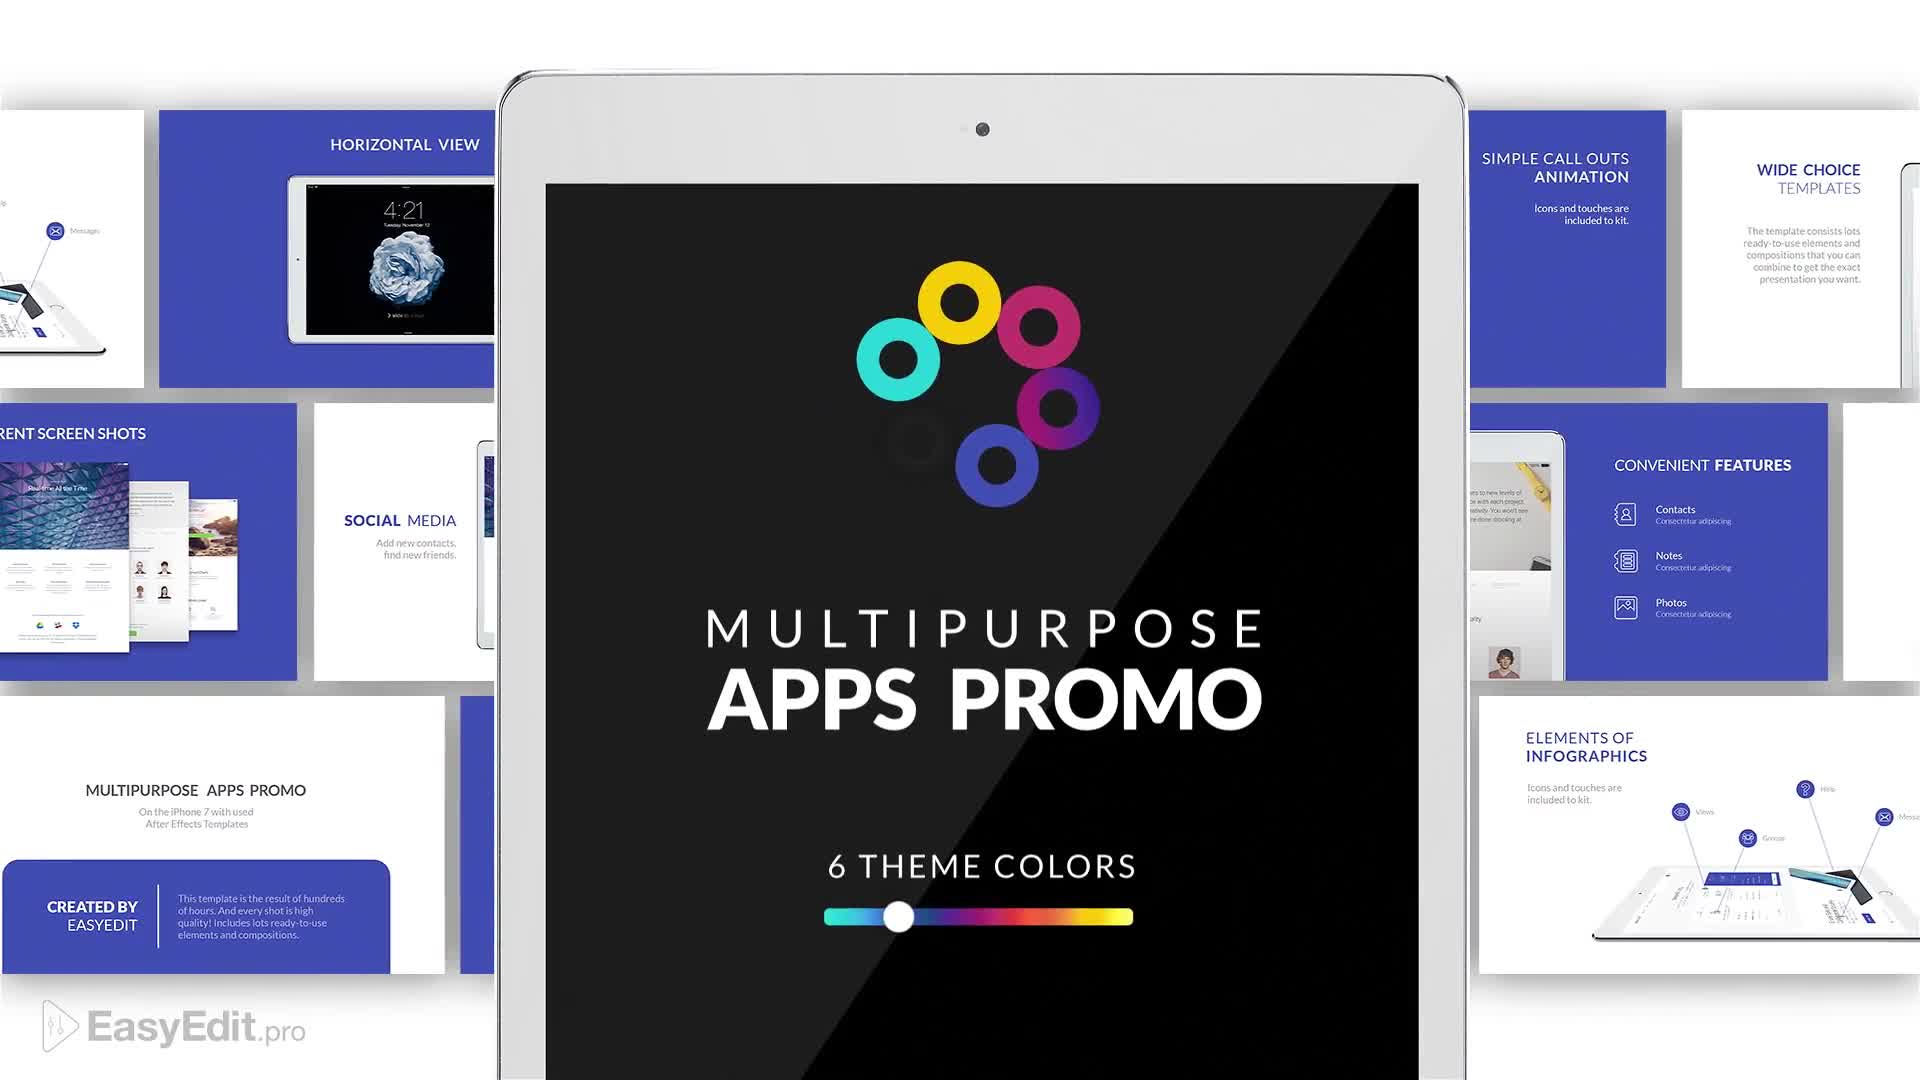 Multipurpose Apps Promo for Tablet - Download Videohive 19319344